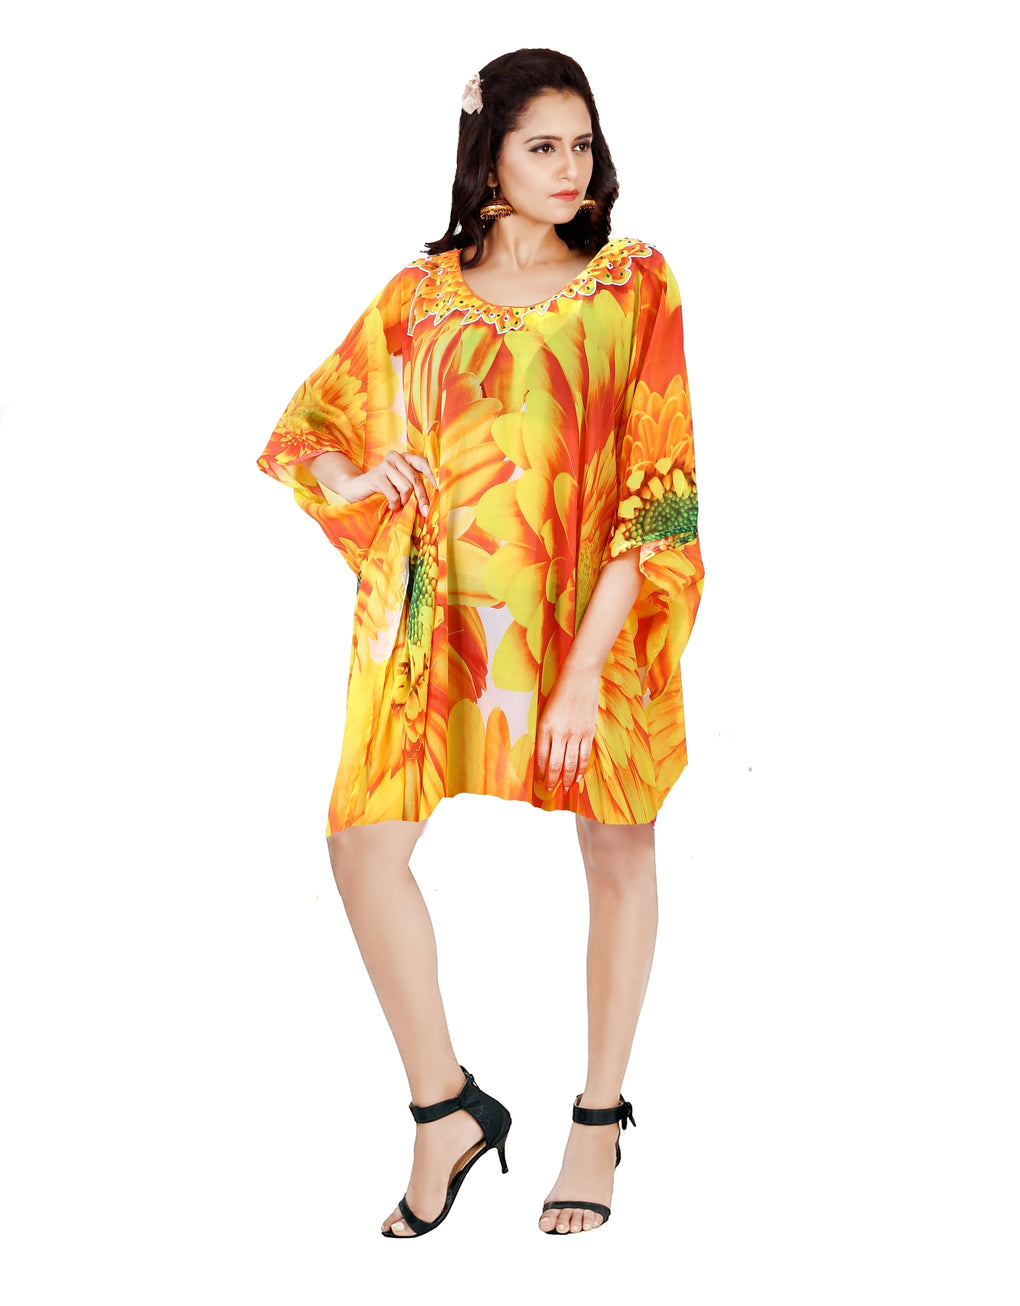 Floral Beauty in an Abstract Patterned short Silk Kaftan glorified with Sunflower Print Silk caftan tunic - Silk kaftan